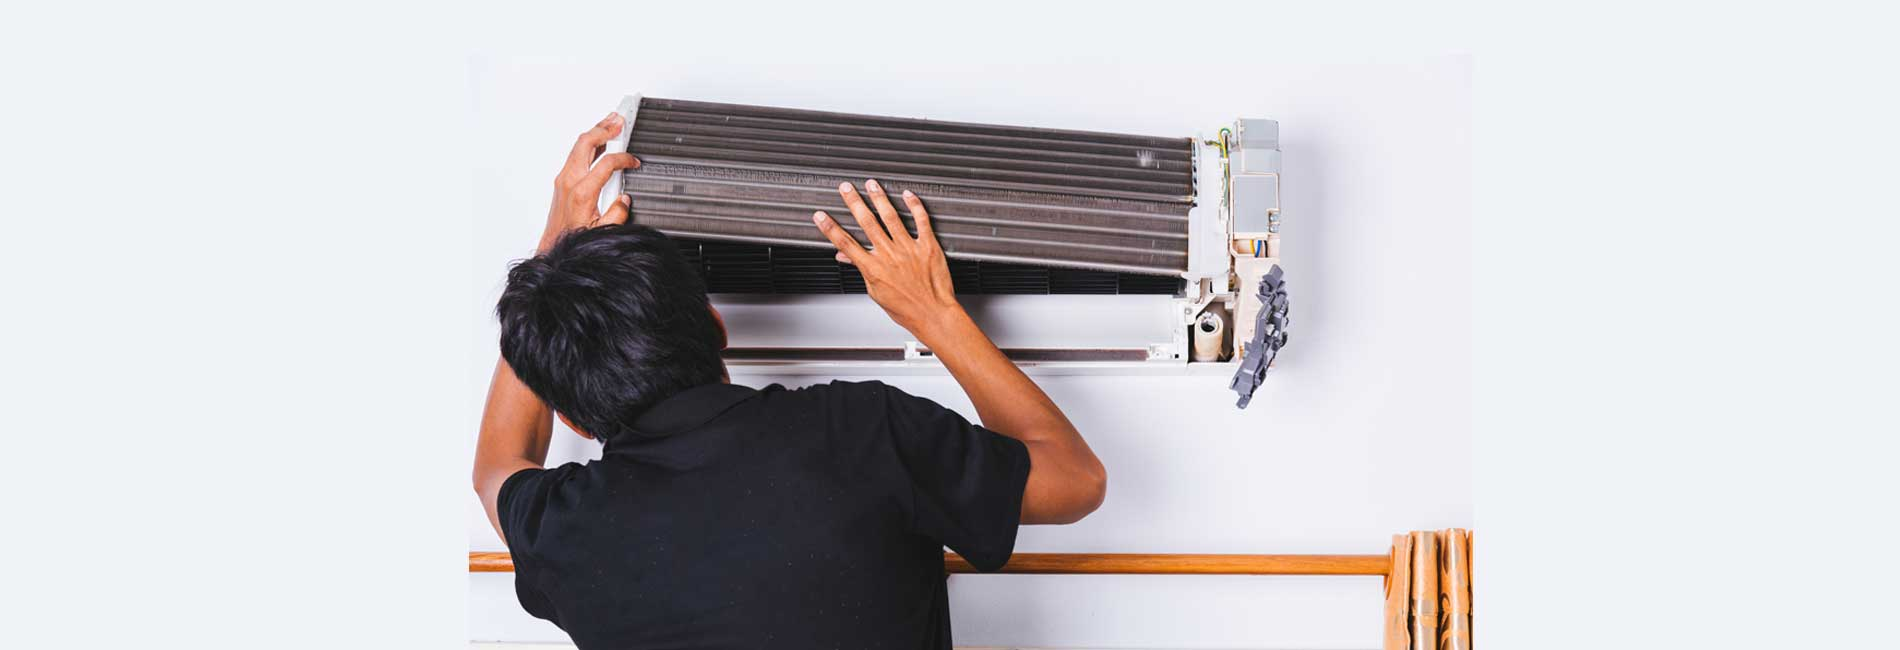 Air Conditioner Repair in Arumbakkam